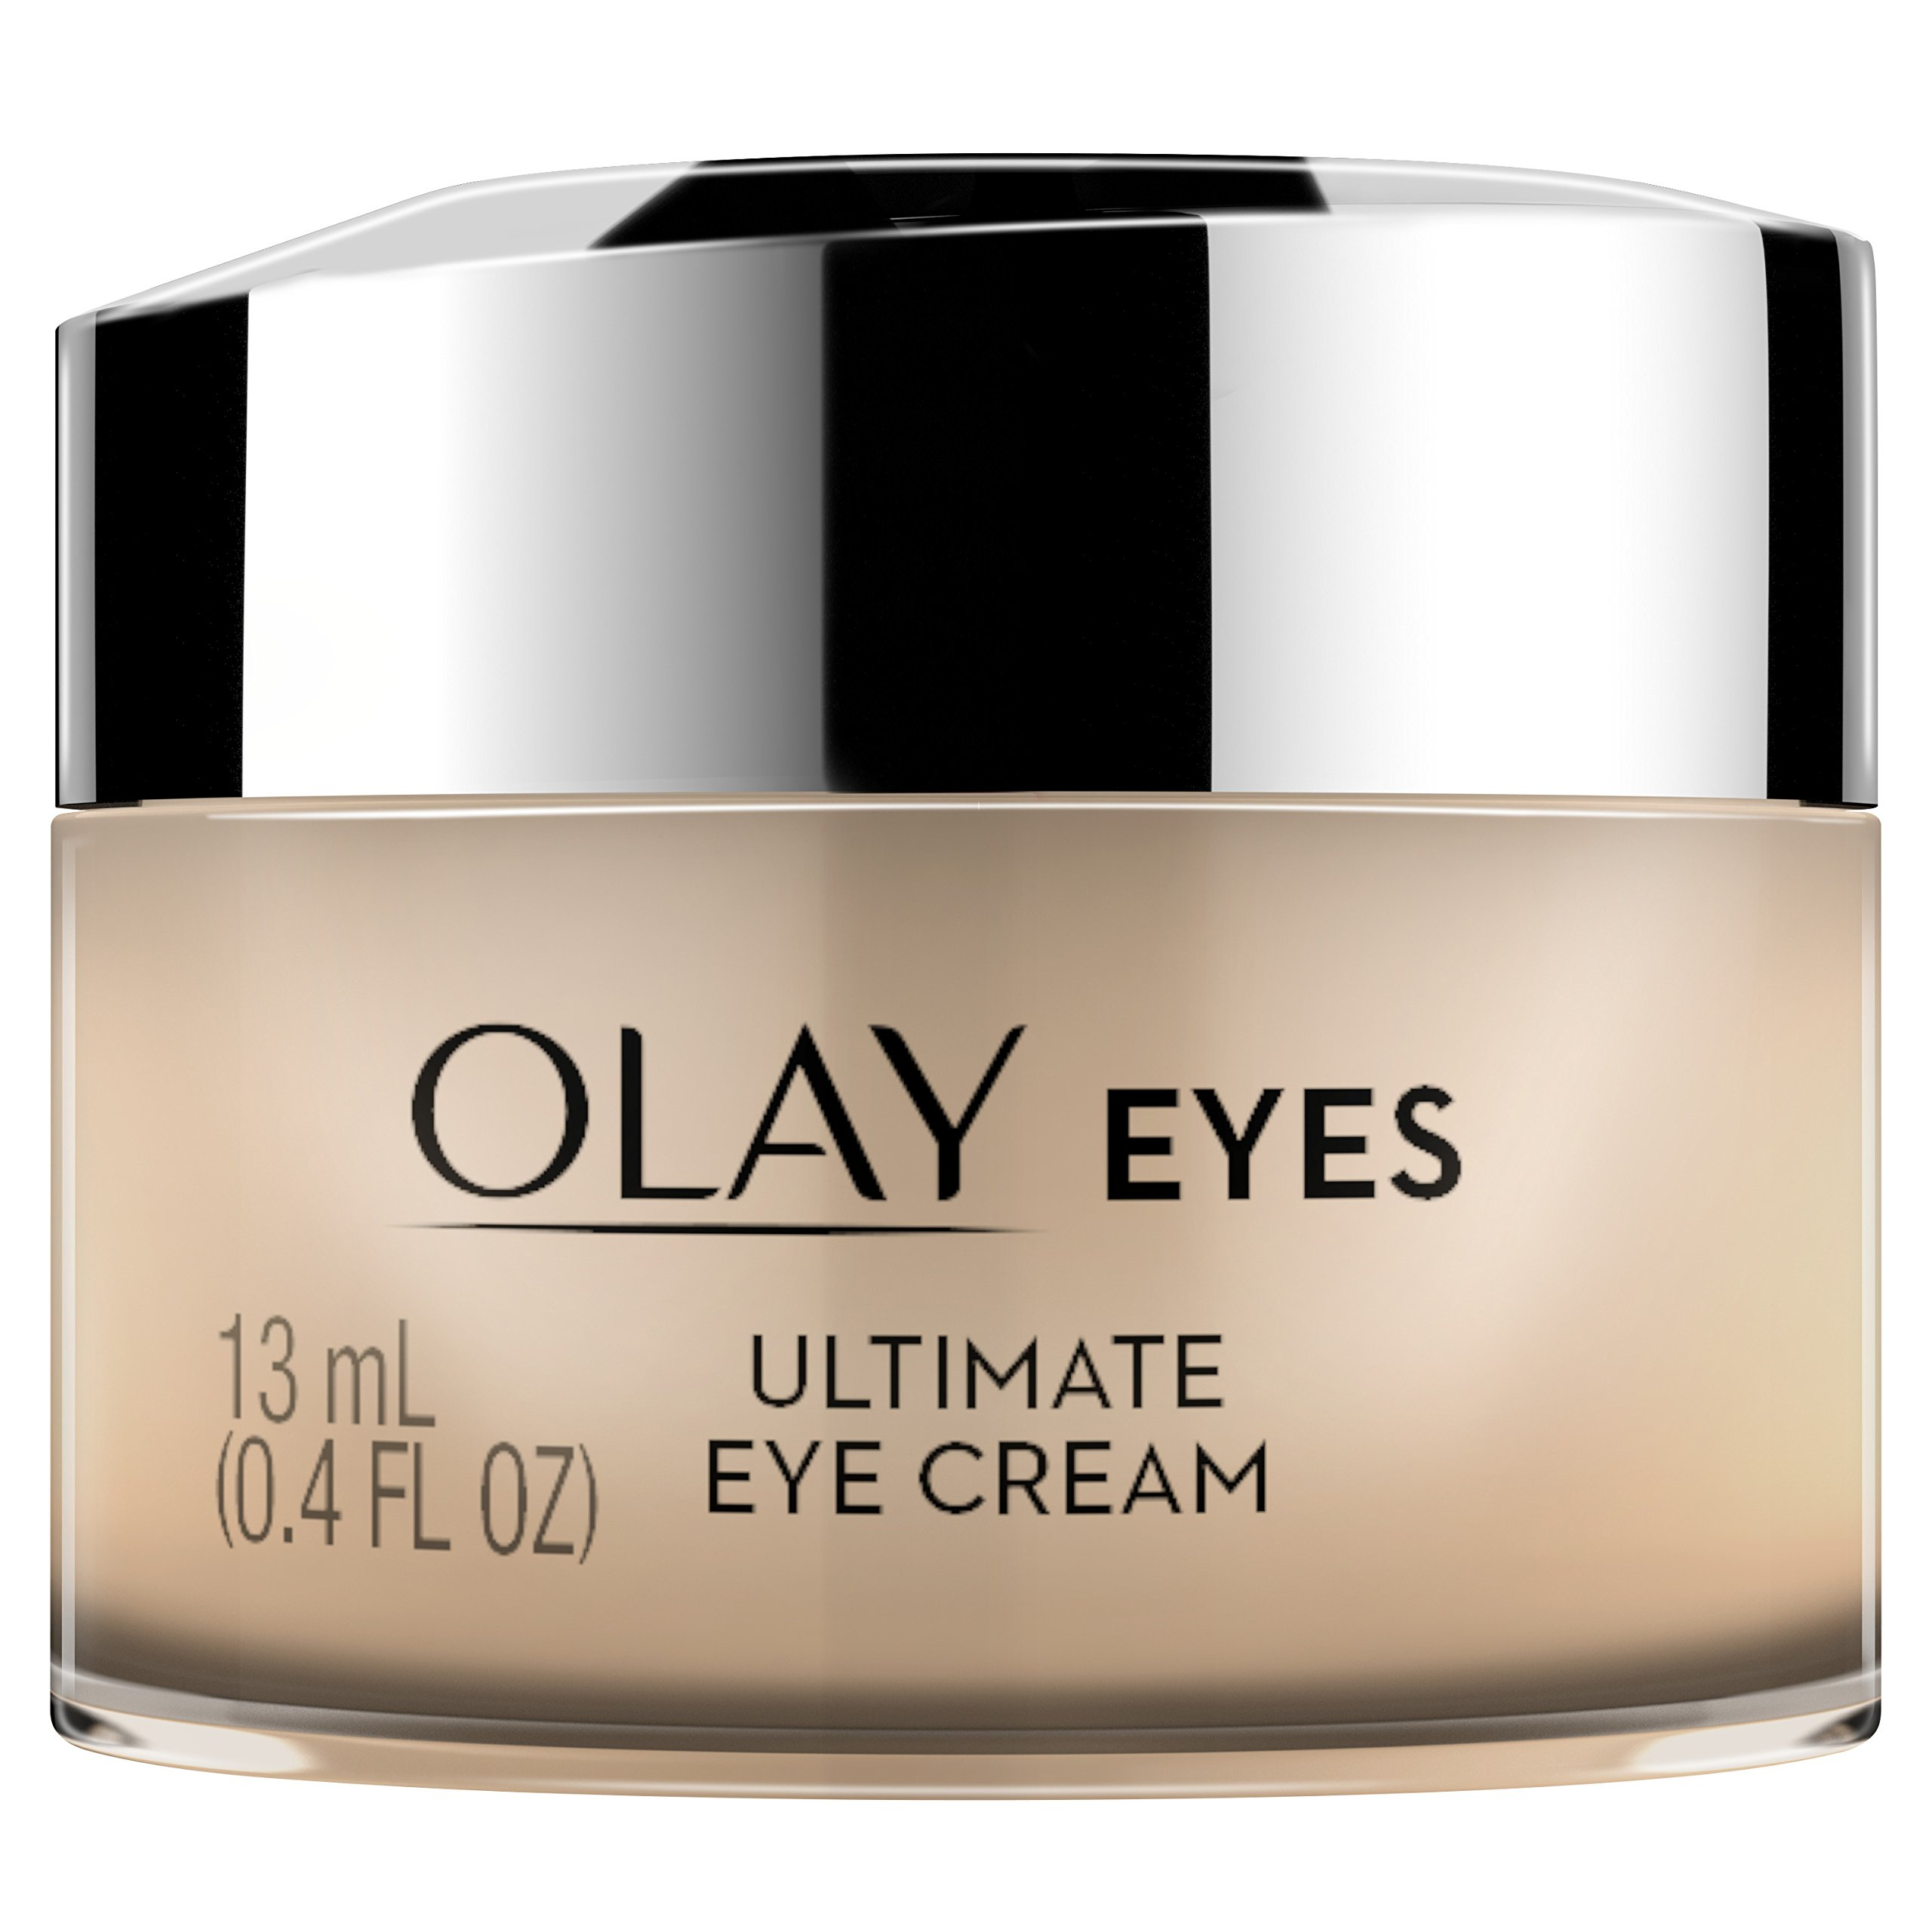 Eye Cream by Olay, Ultimate Cream for Dark Circles and Puffiness, 0.4 Fl Oz